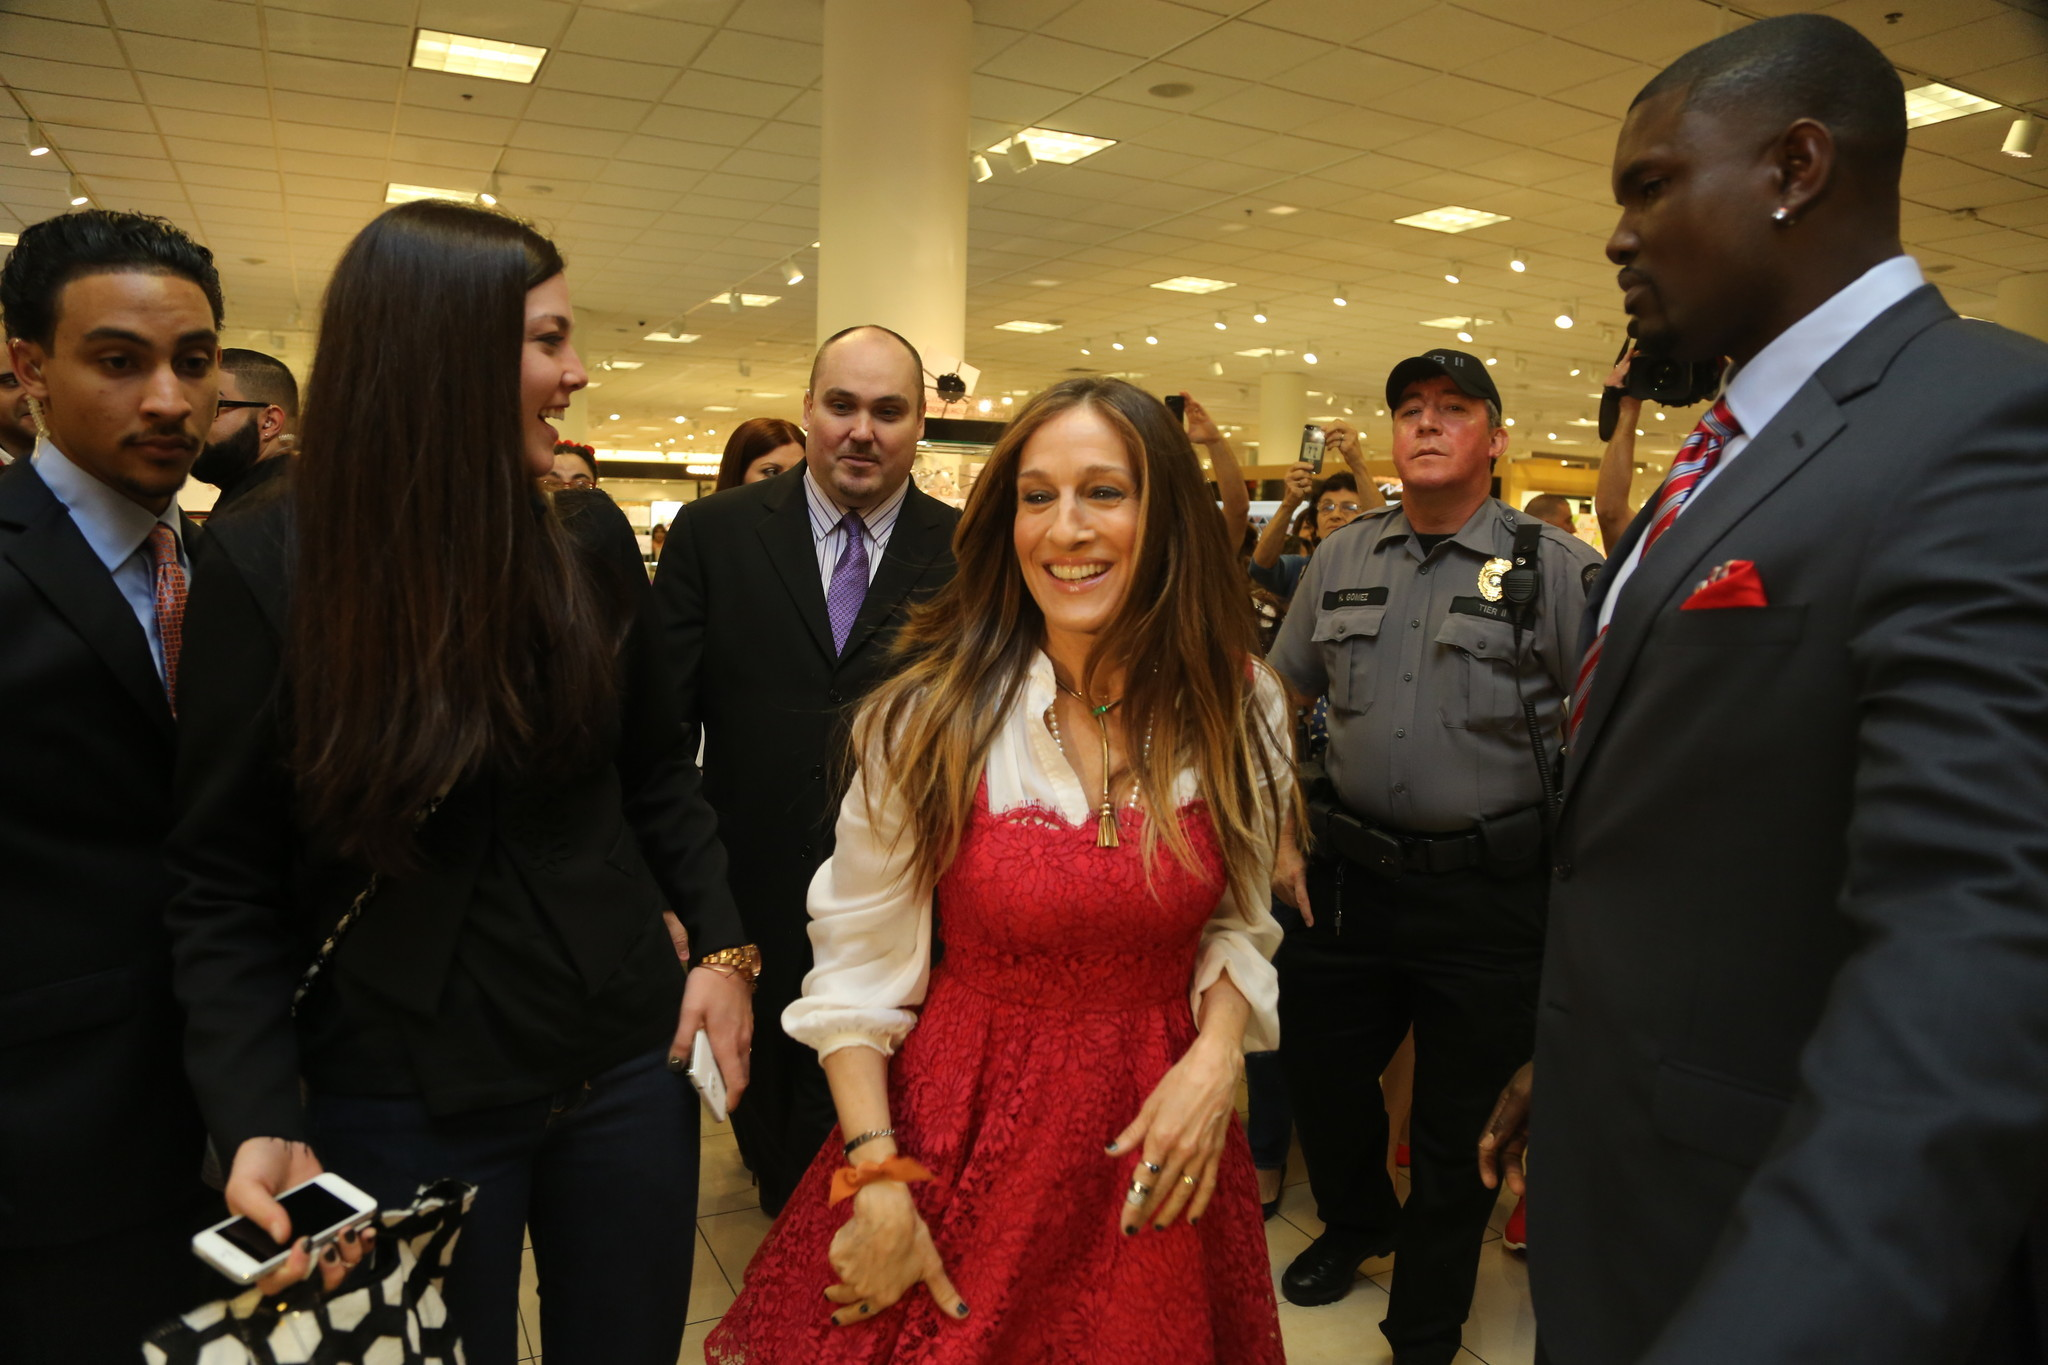 Celeb-spotting around South Florida - Sarah Jessica Parker